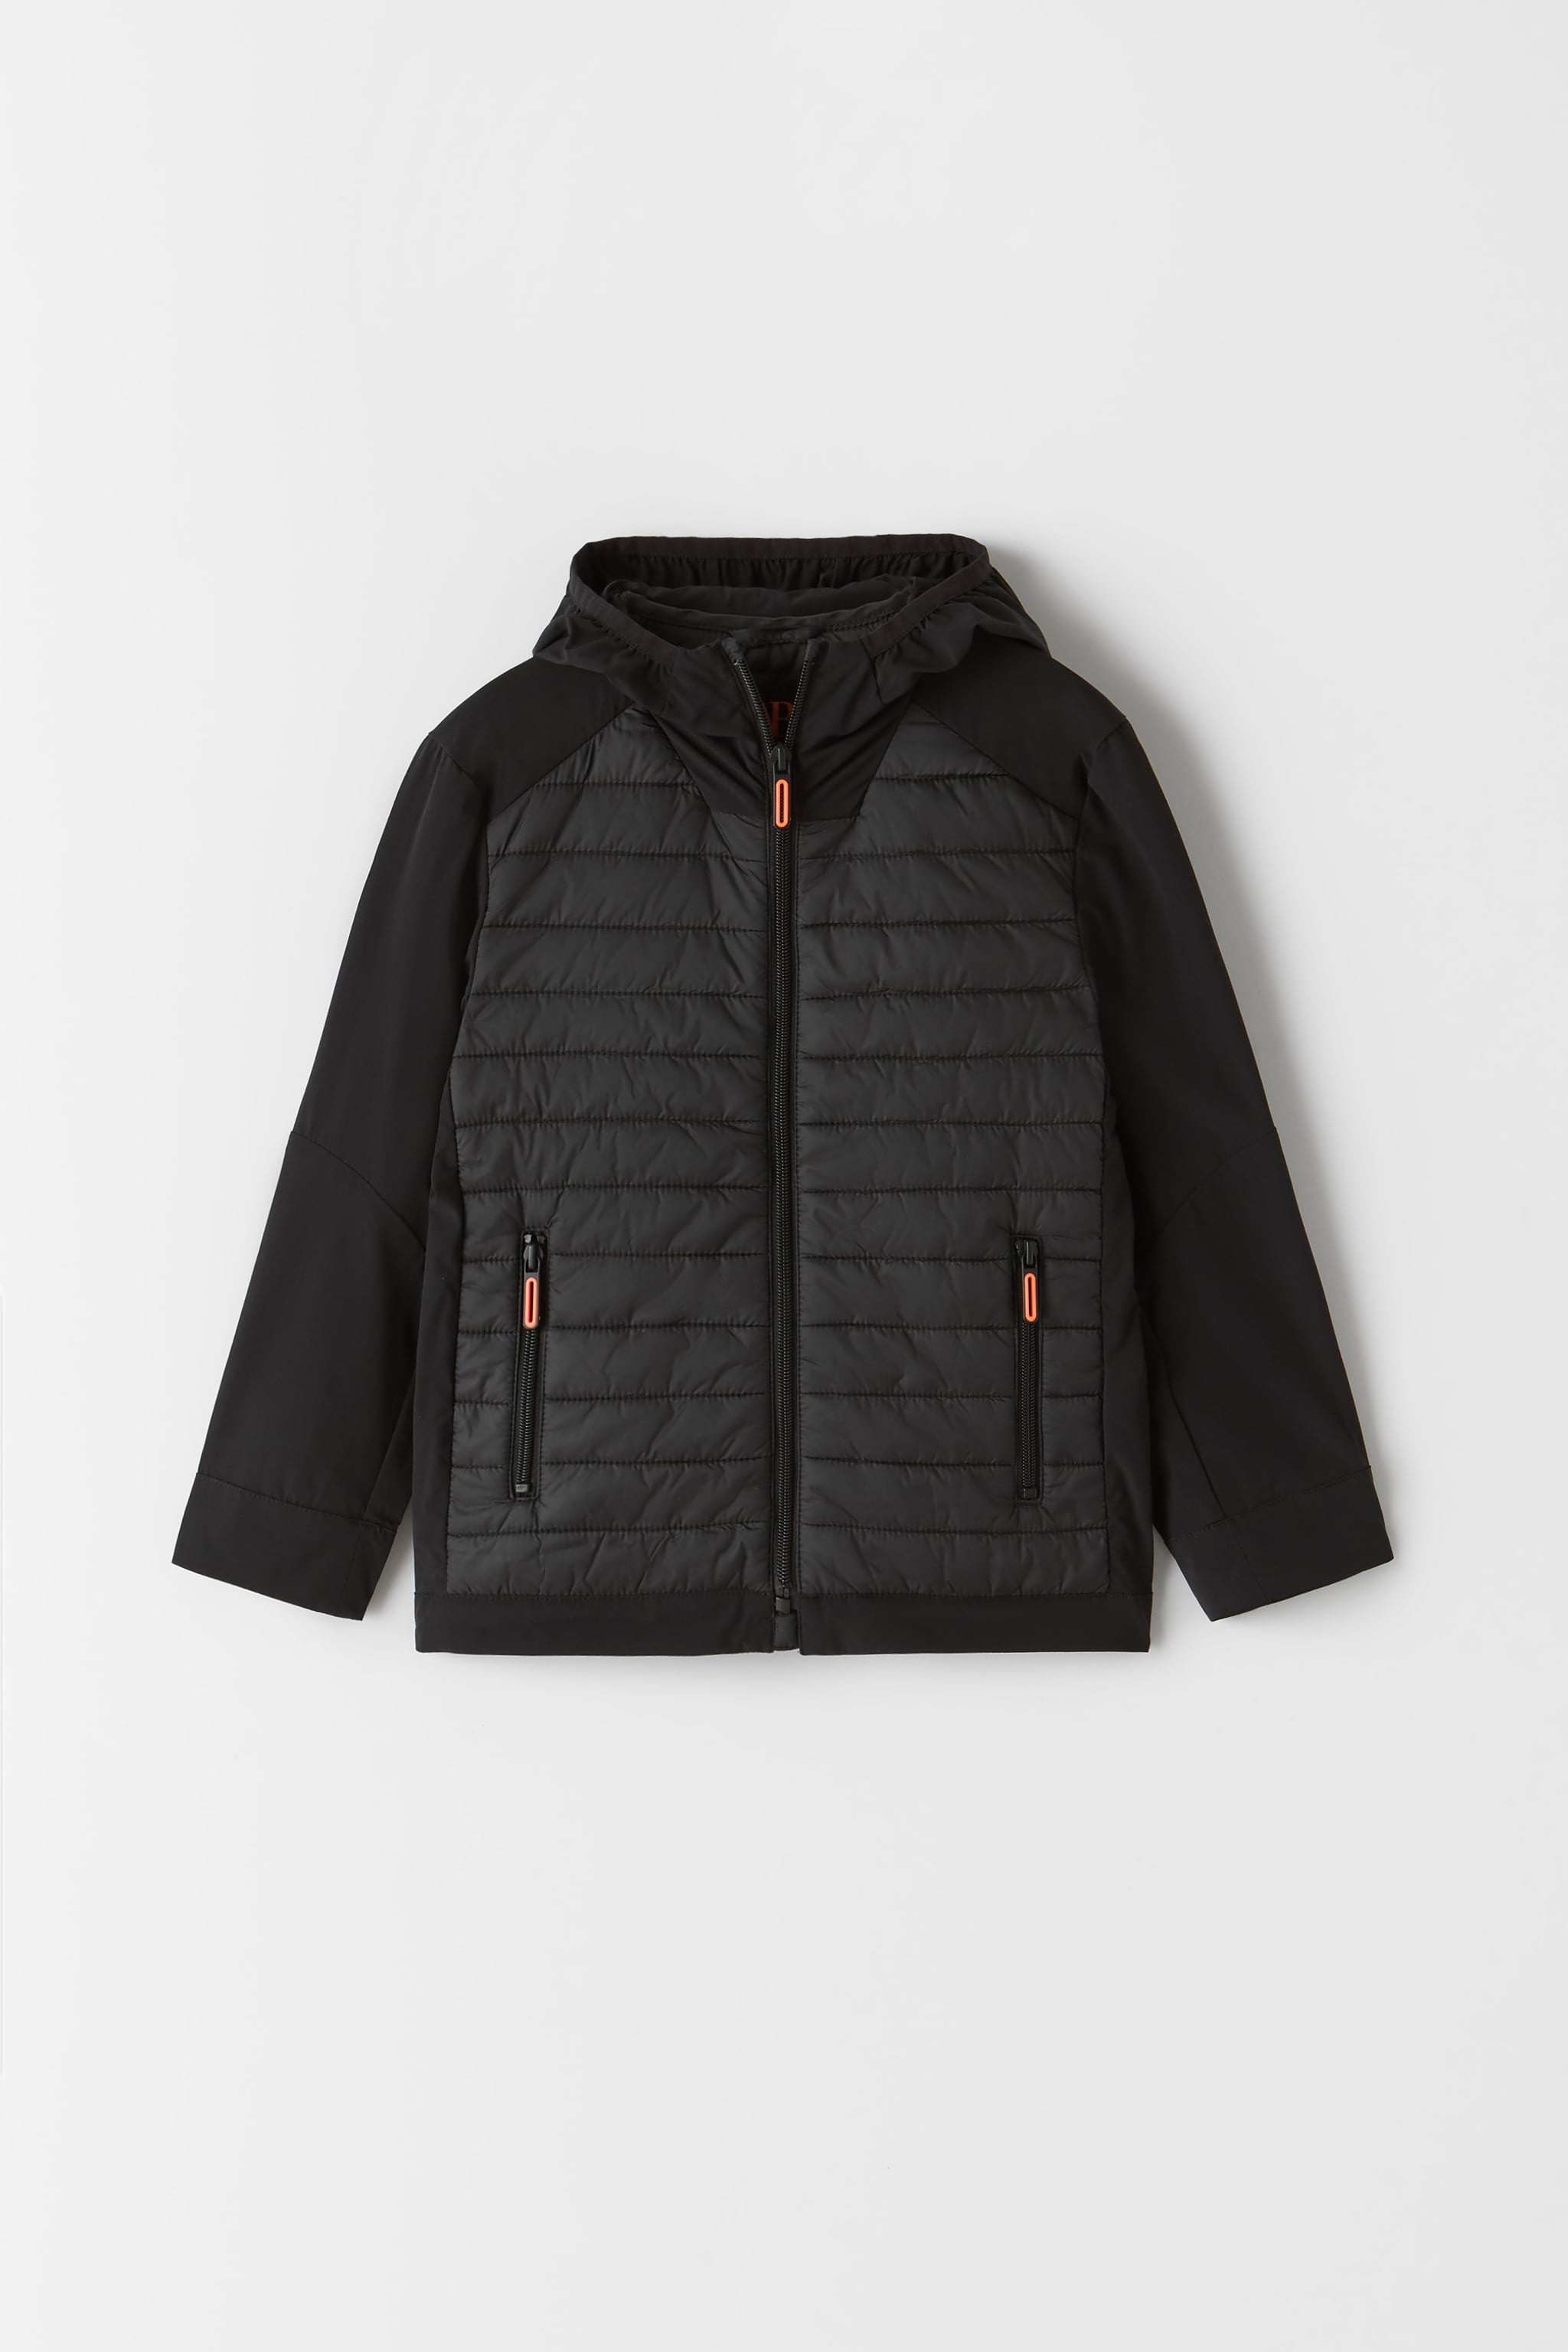 Zara COMBINATION STRETCHY ATHLETIC JACKET